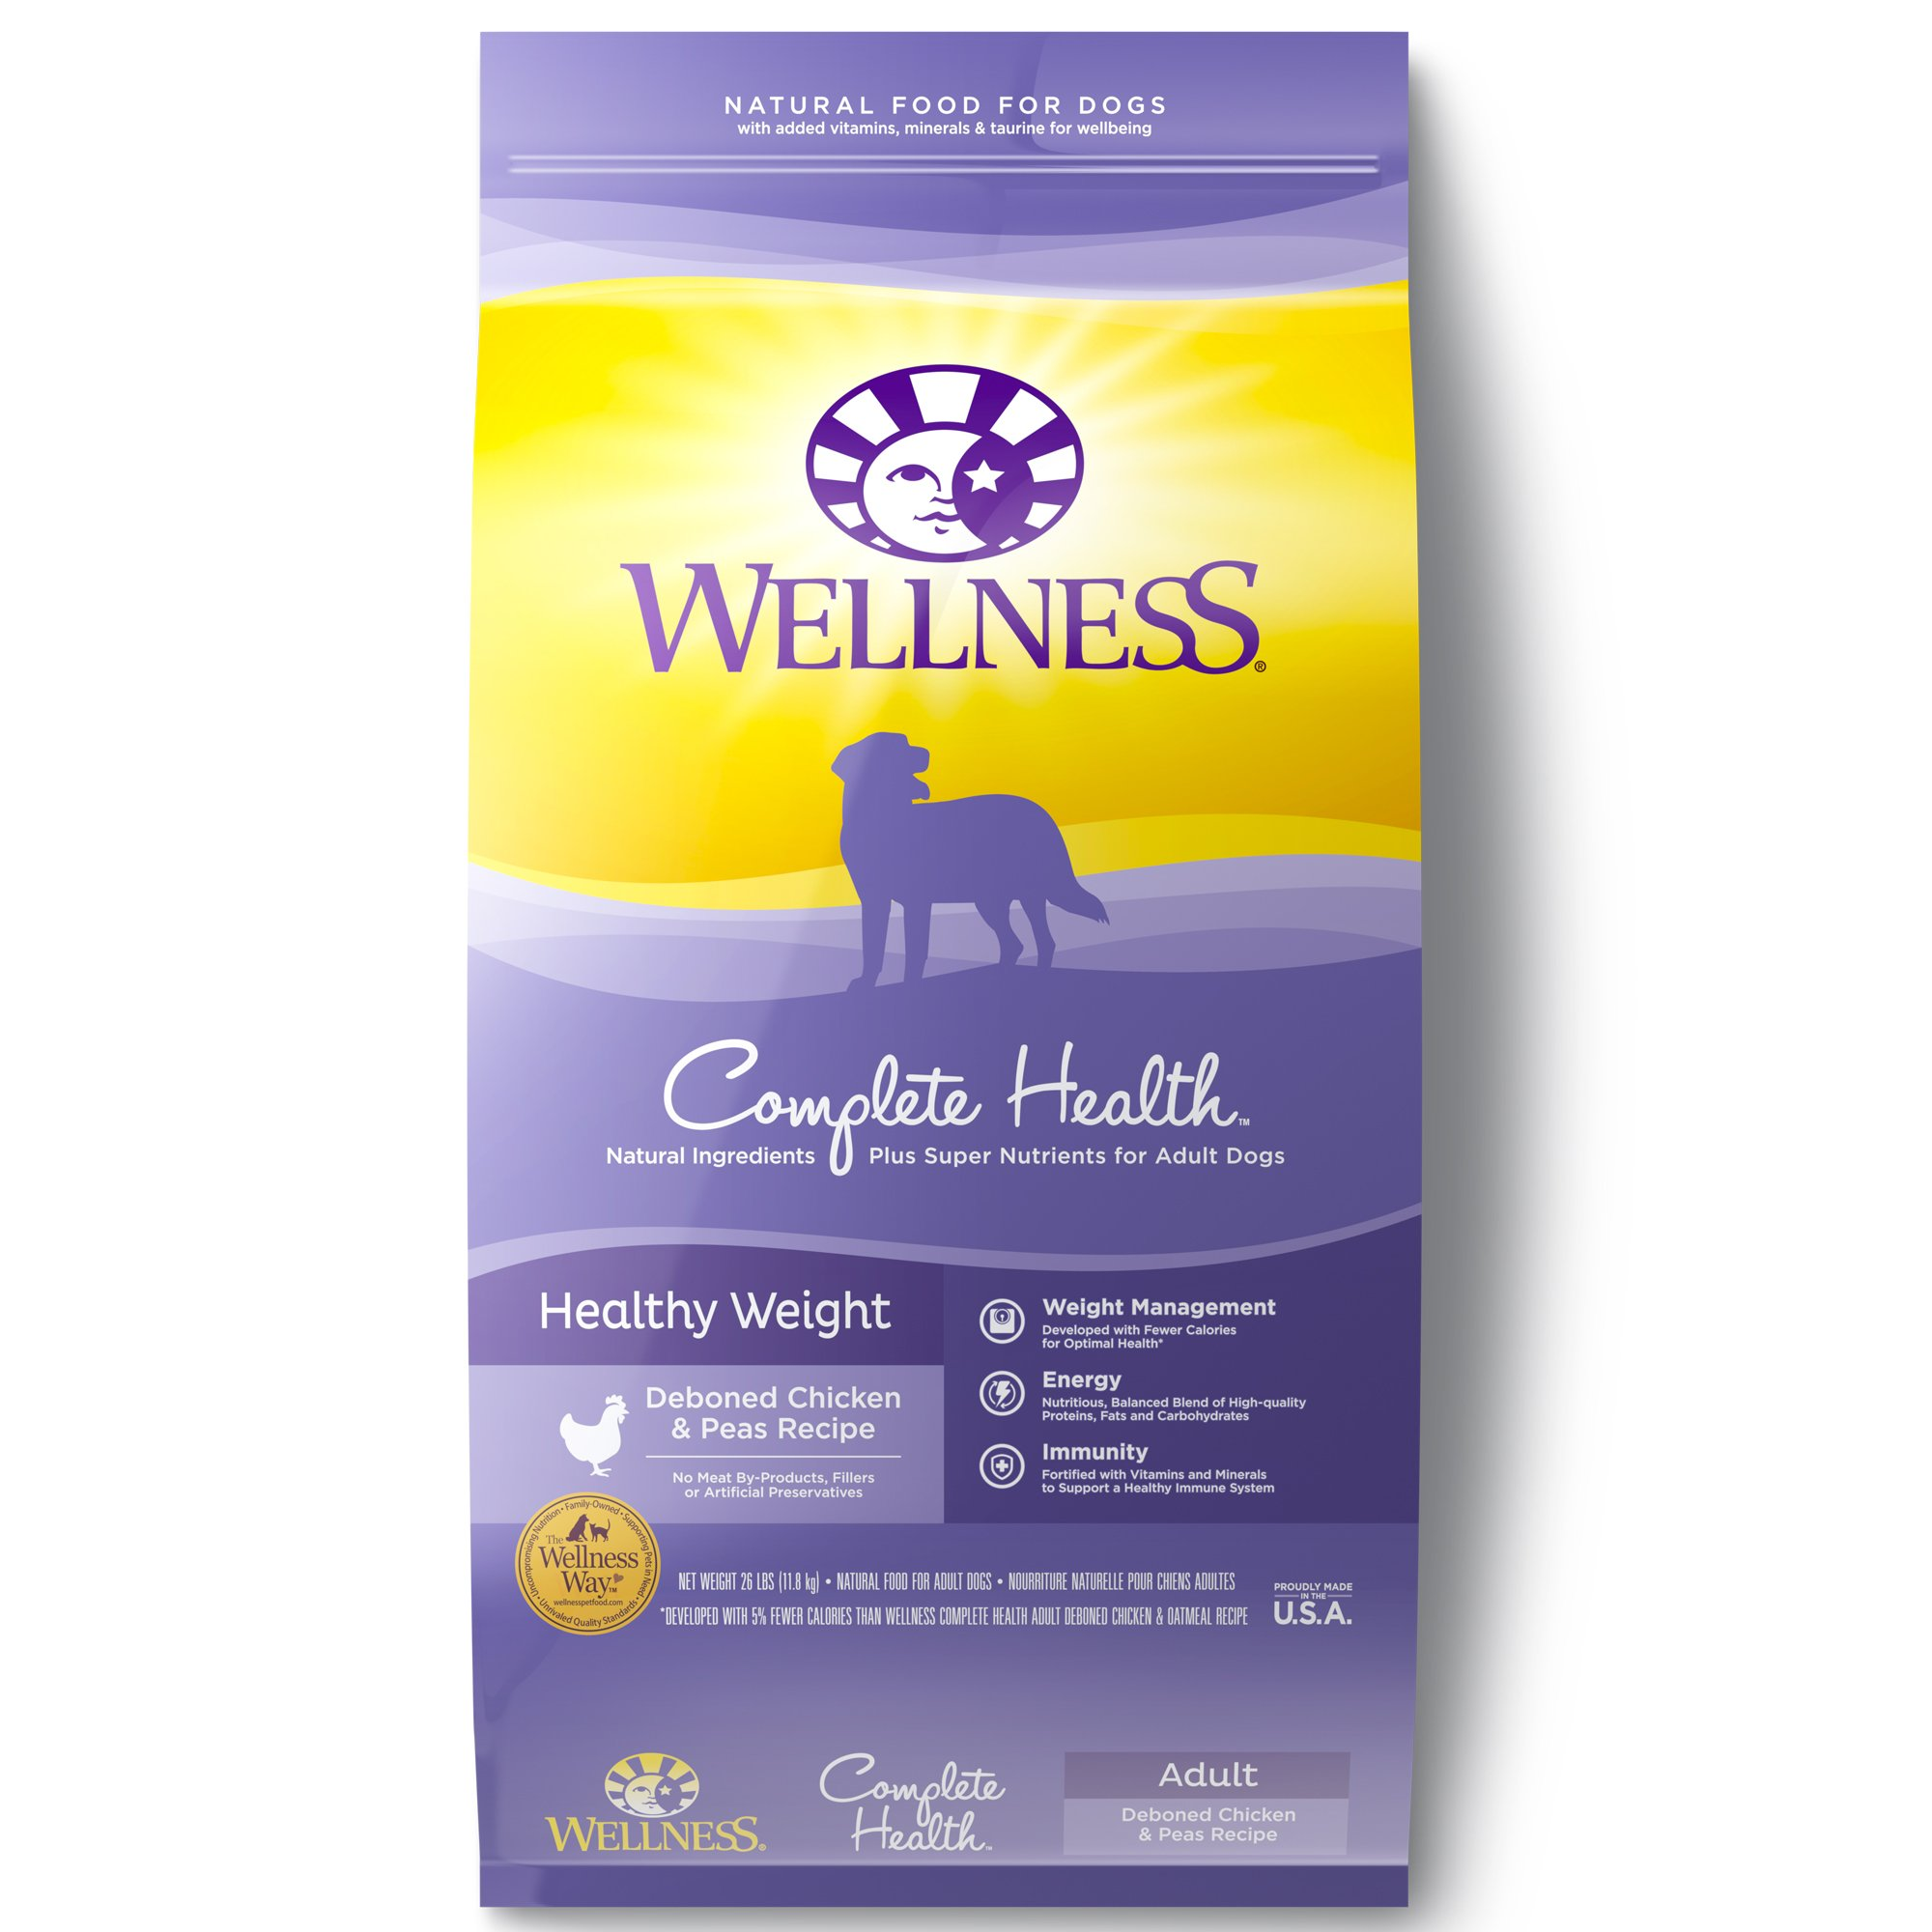 Wellness Complete Health Natural Dry Healthy Weight Dog Food, Chicken & Peas, 26-Pound Bag by Wellness Natural Pet Food